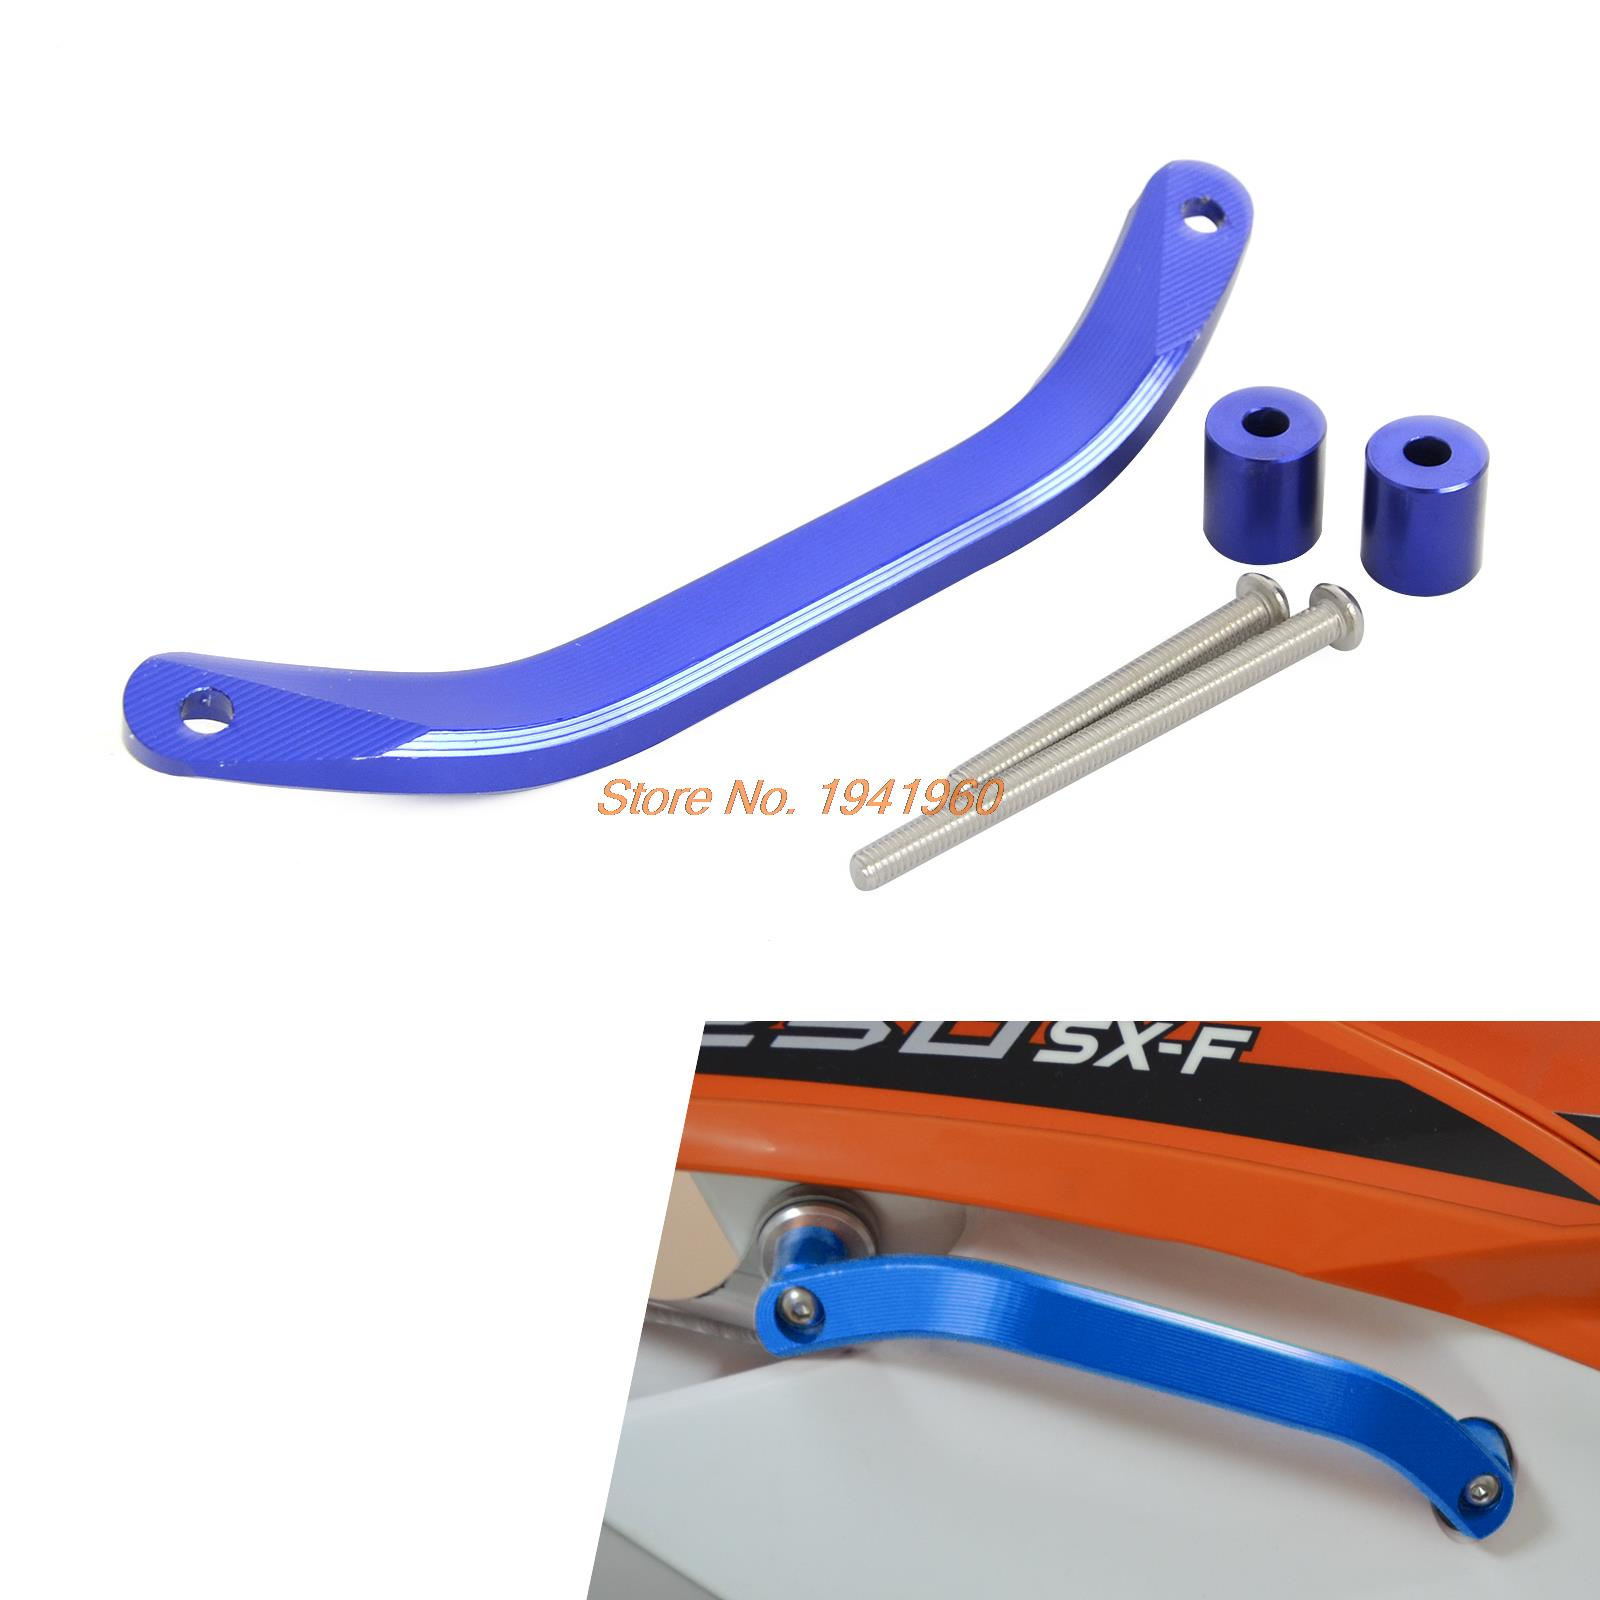 Motorcycle Rear Passenger CNC Billet Grab Handle for KTM 125/150 SX 11-15 250/300 SX/XC/XC-W SX-F/XC-F 11-15 XCF-W/EXC 12-16